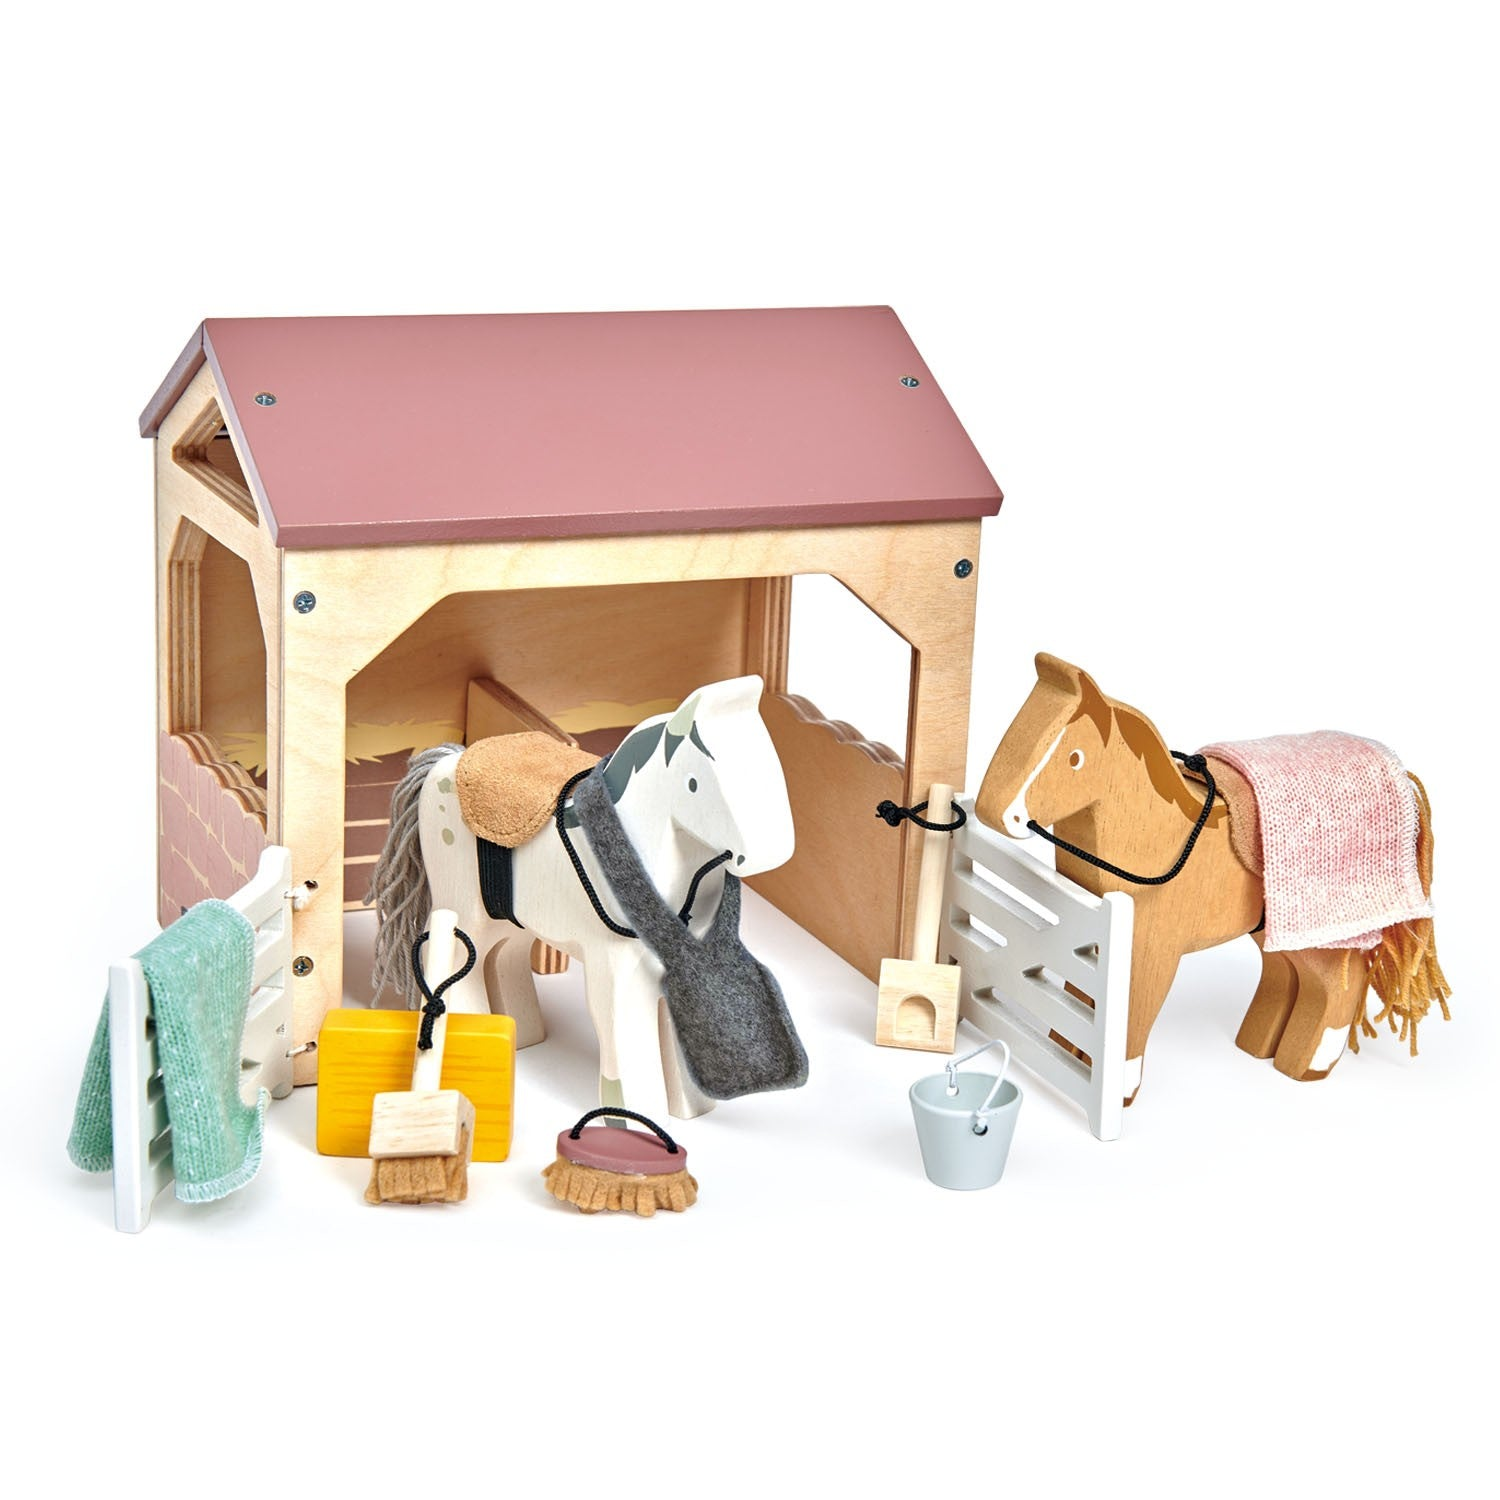 The stables Tender Leaf Toys